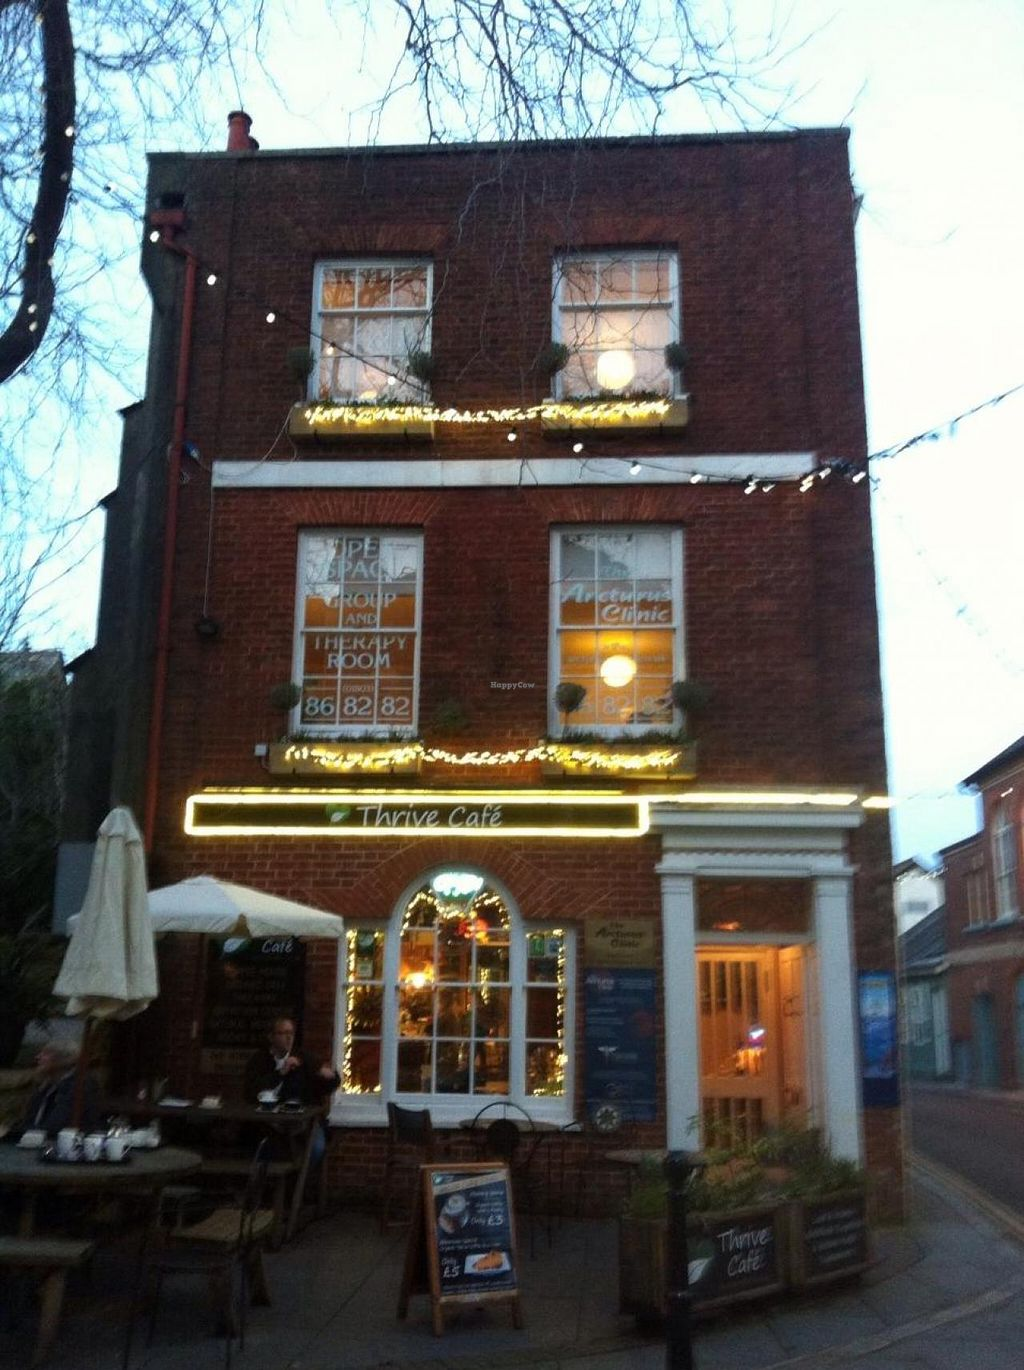 """Photo of CLOSED: Thrive Cafe  by <a href=""""/members/profile/hack_man"""">hack_man</a> <br/>Outside - taken by my Devon contact Mr P the Green <br/> February 3, 2015  - <a href='/contact/abuse/image/55308/92159'>Report</a>"""